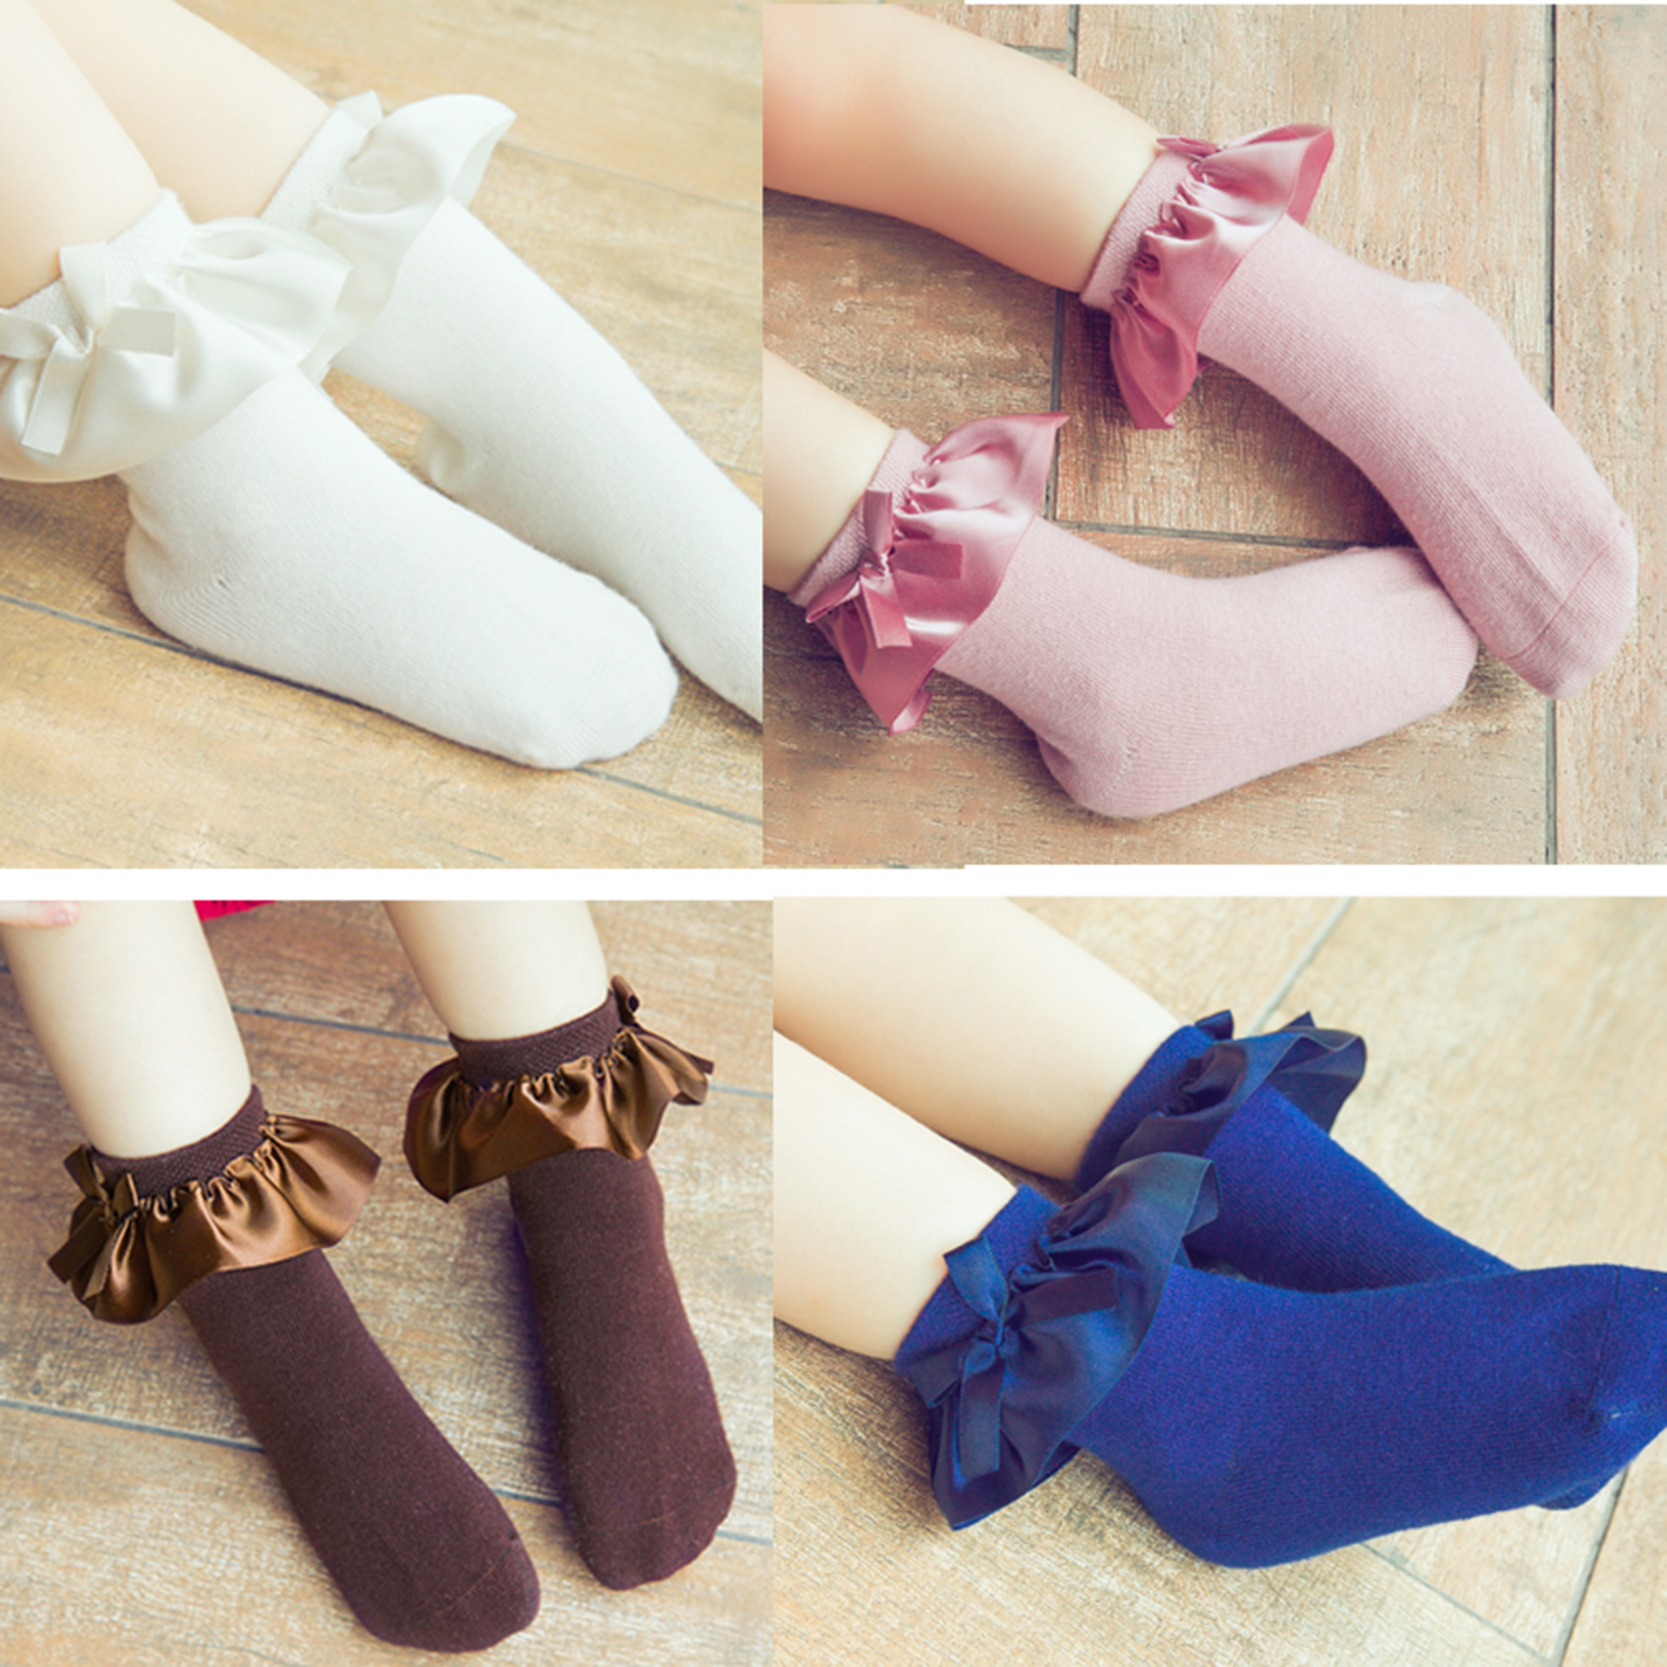 Lace Bow Cute Kid Girl Socks Cotton Solid Color Princess Ankle Short Sock Fashion Pink White Black emmababy baby girls socks with bow tie lace ruffle princess cotton sock with ribbons multi colors gray red black pink white